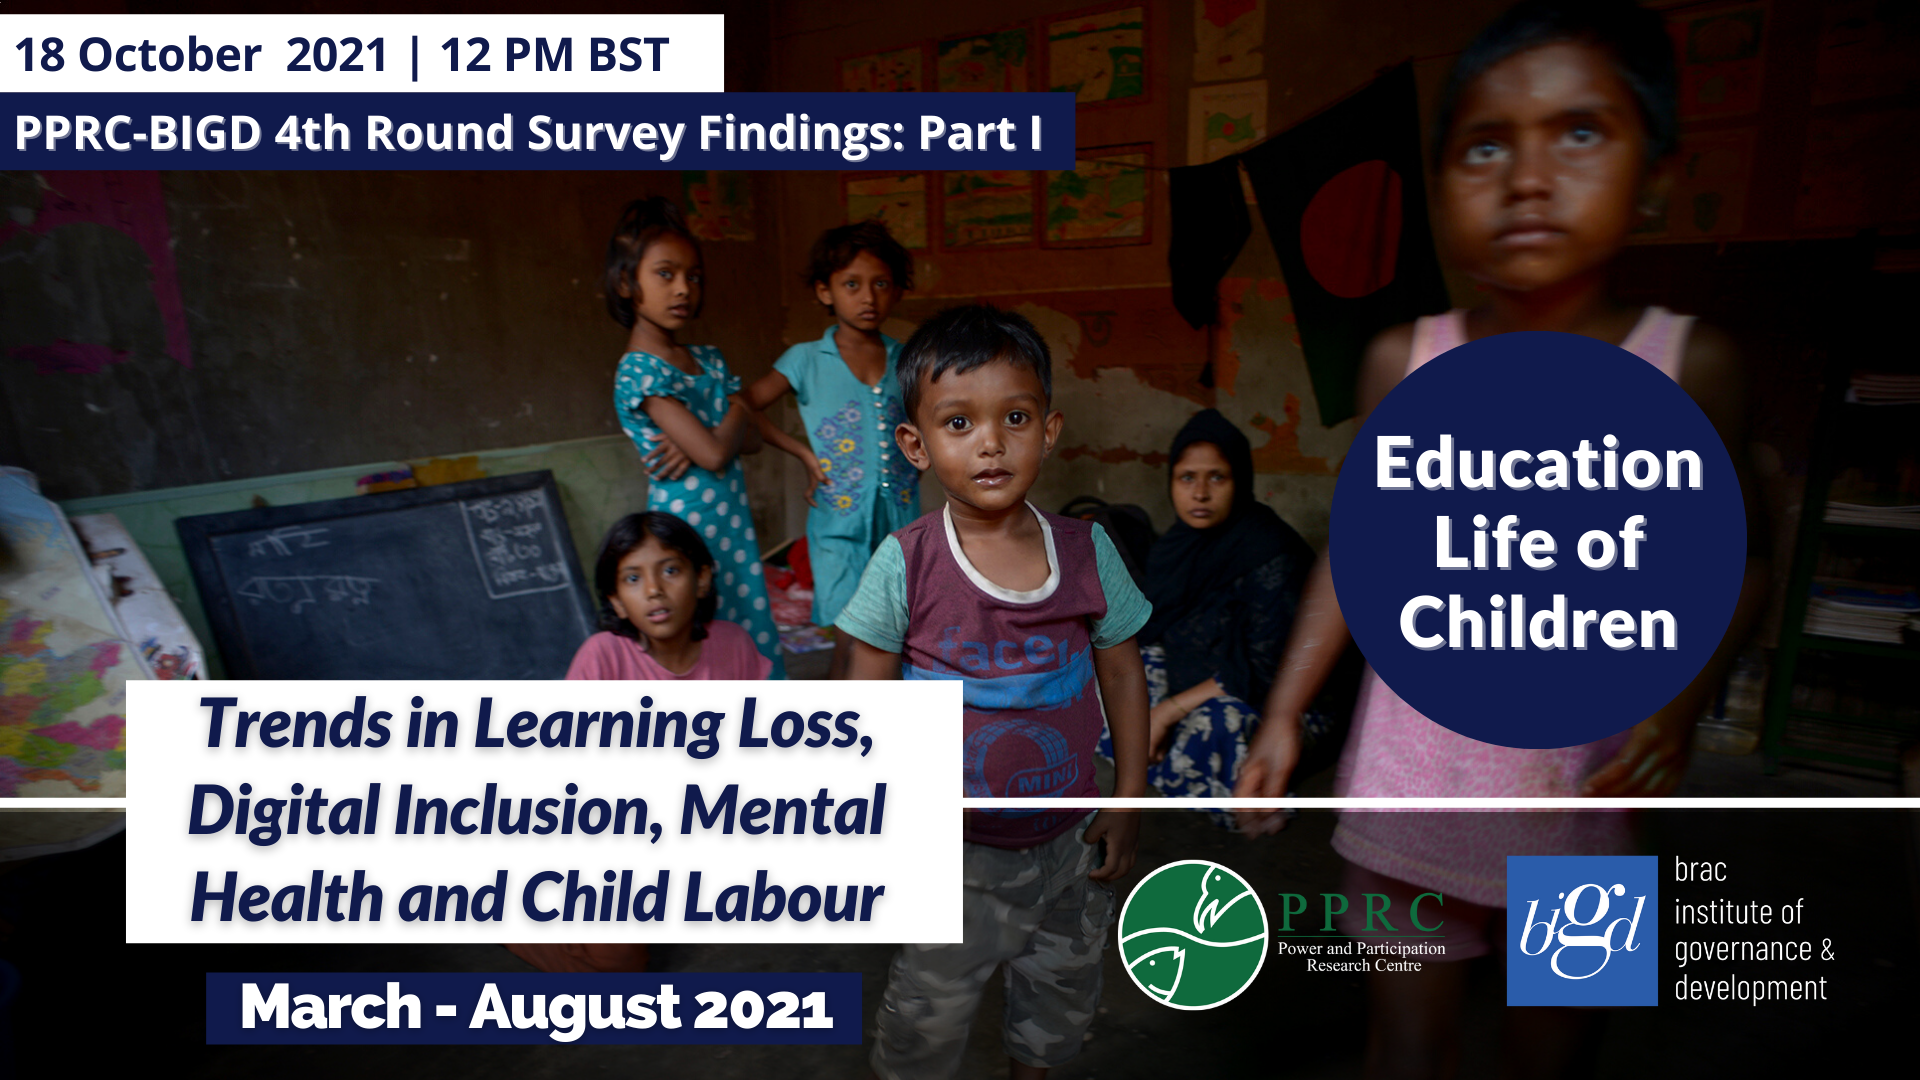 Urgent need to address the twin problems of learning loss and poor mental health as part of educational recovery